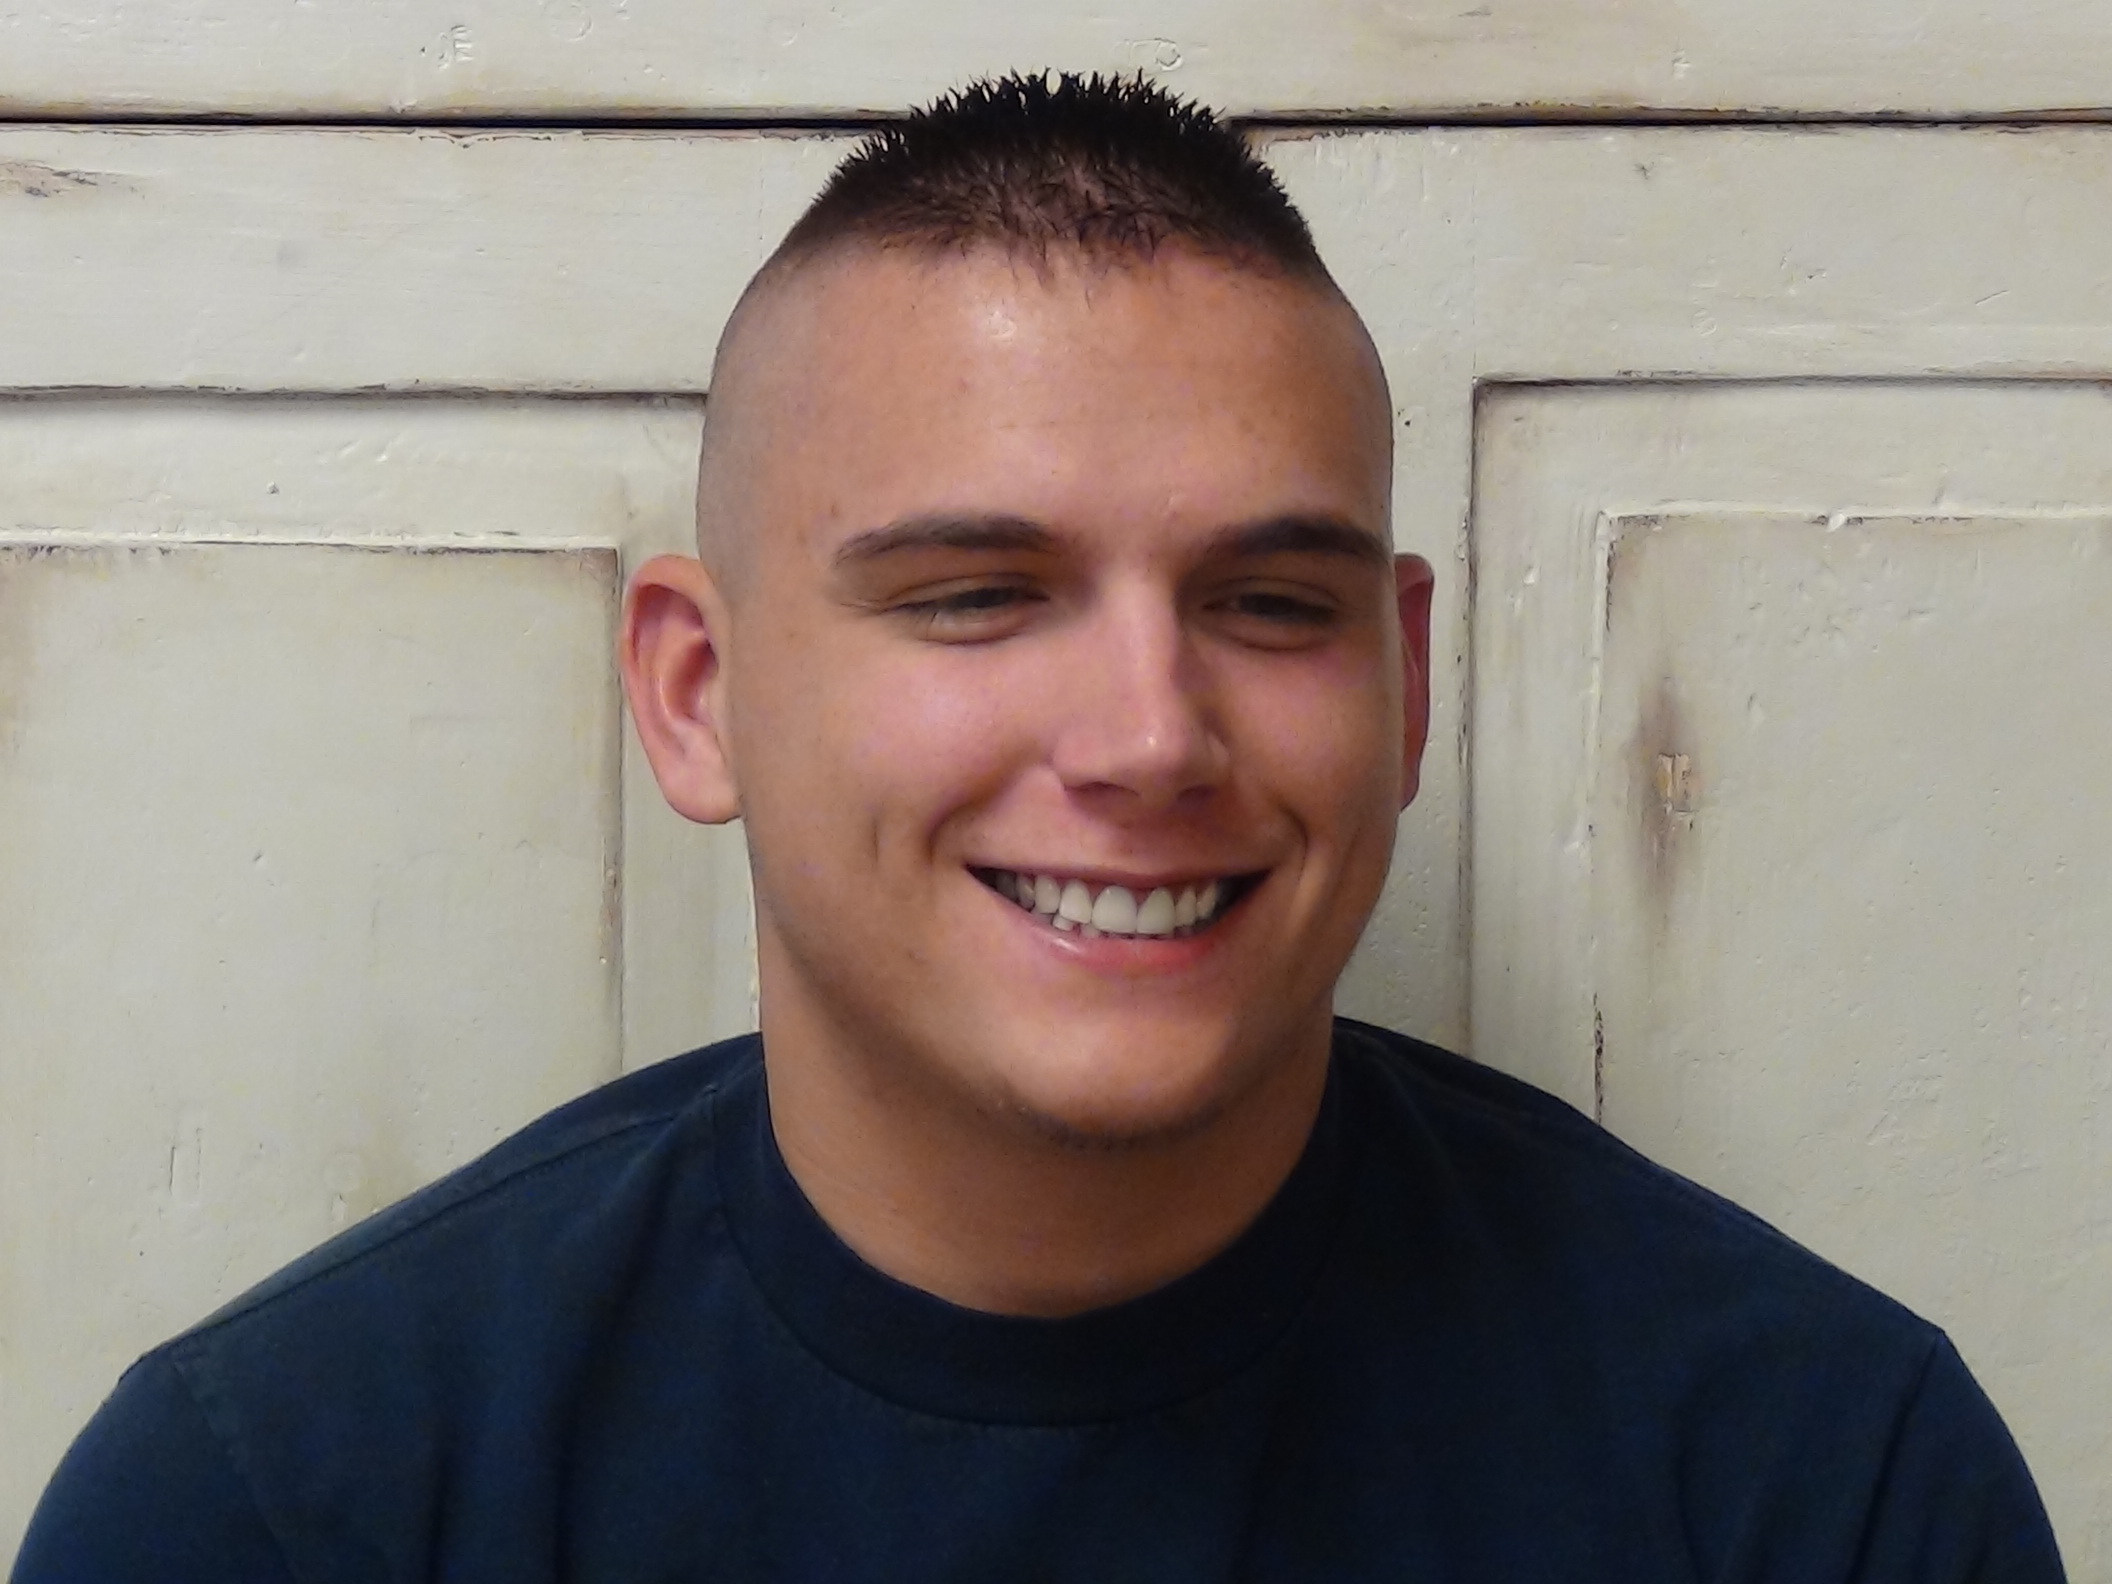 High and Tight Military Cut http://www.boysandgirlshairstyles.com/how-to-do-a-high-and-tight-military-cut.html/